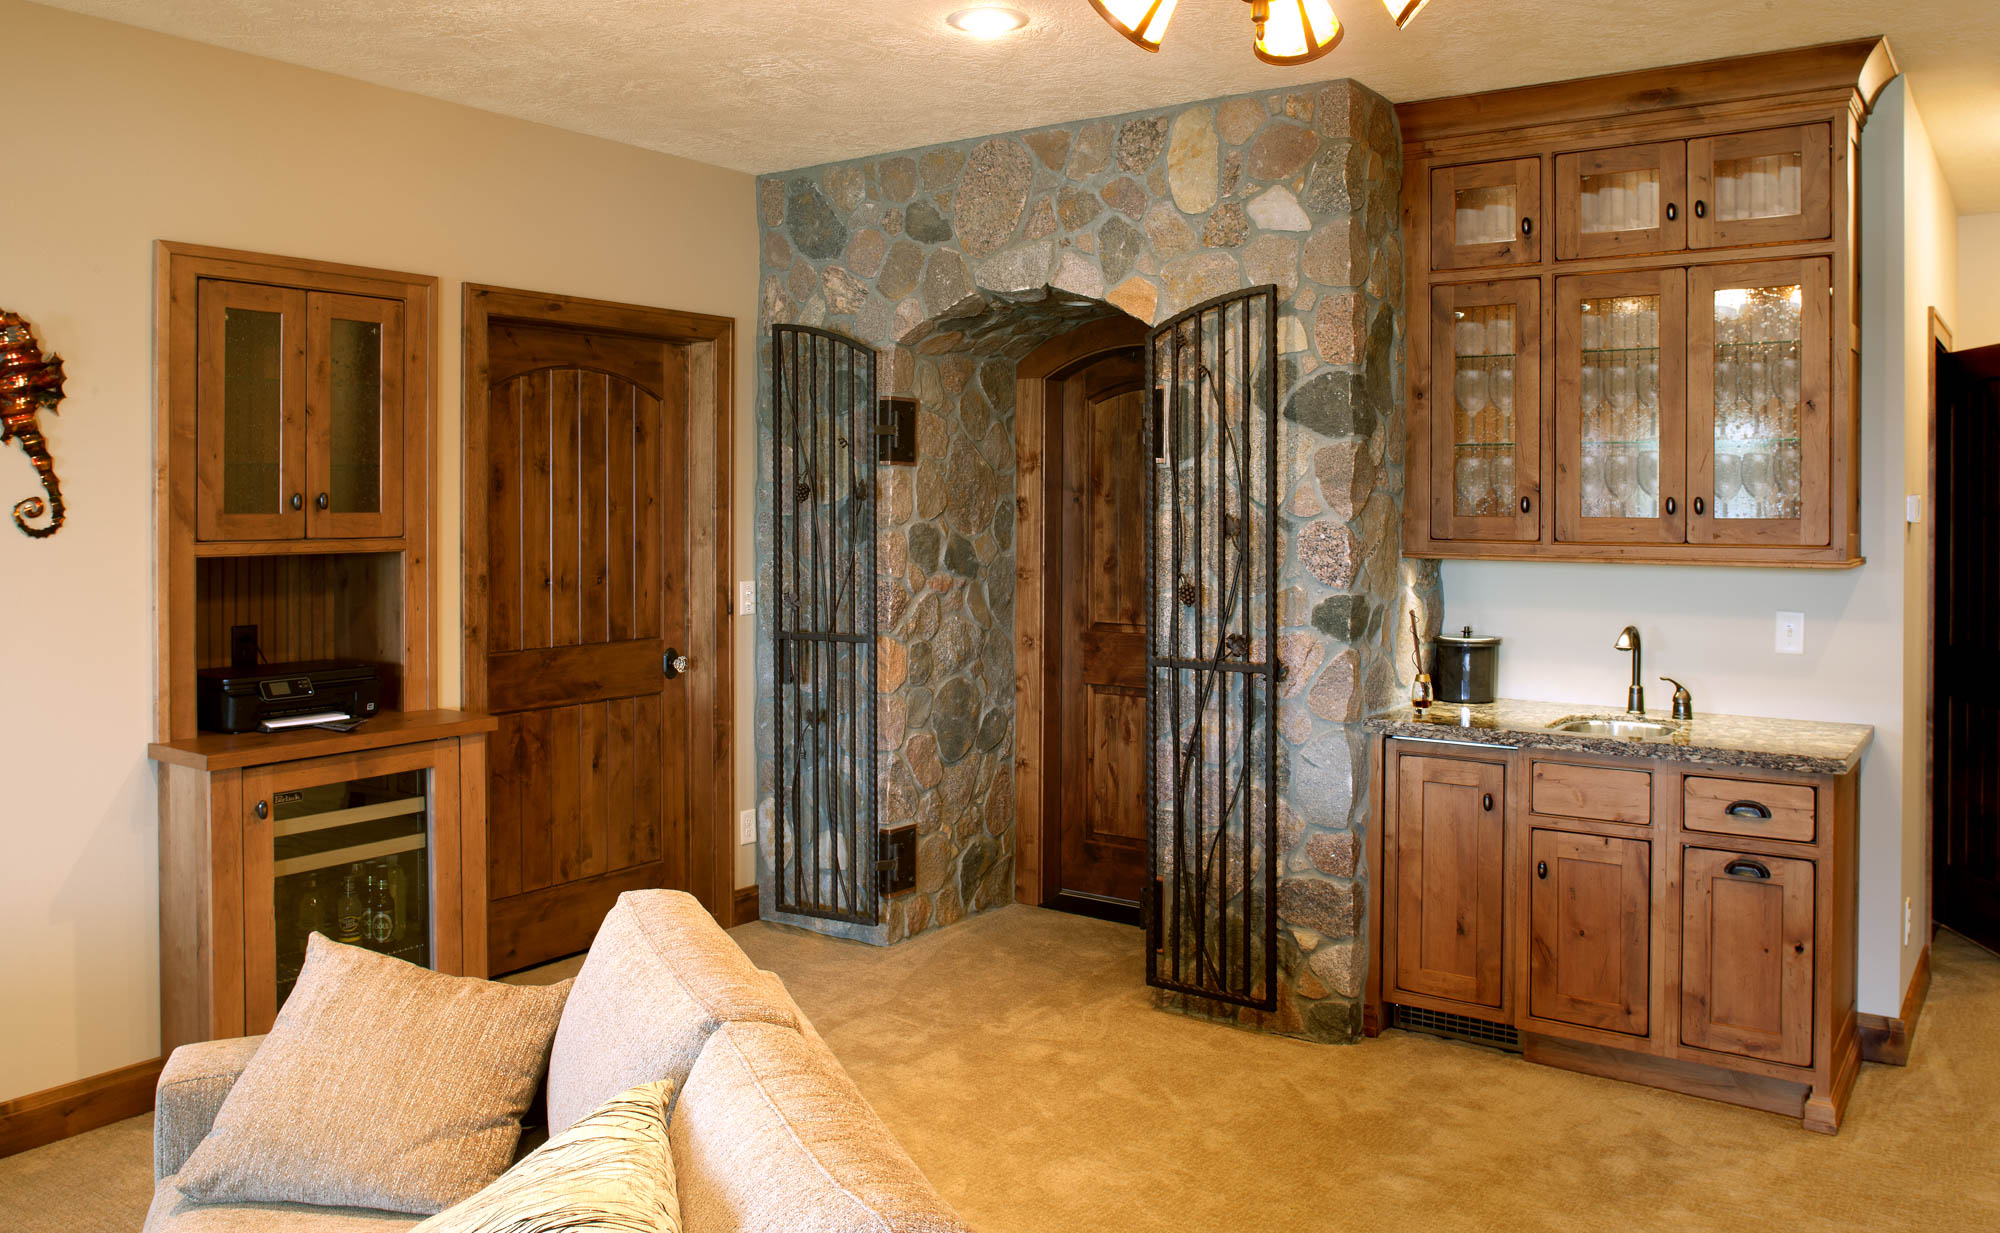 Stained wine cellar cabinets in Vintage Nutmeg by Showplace Cabinetry - view 1